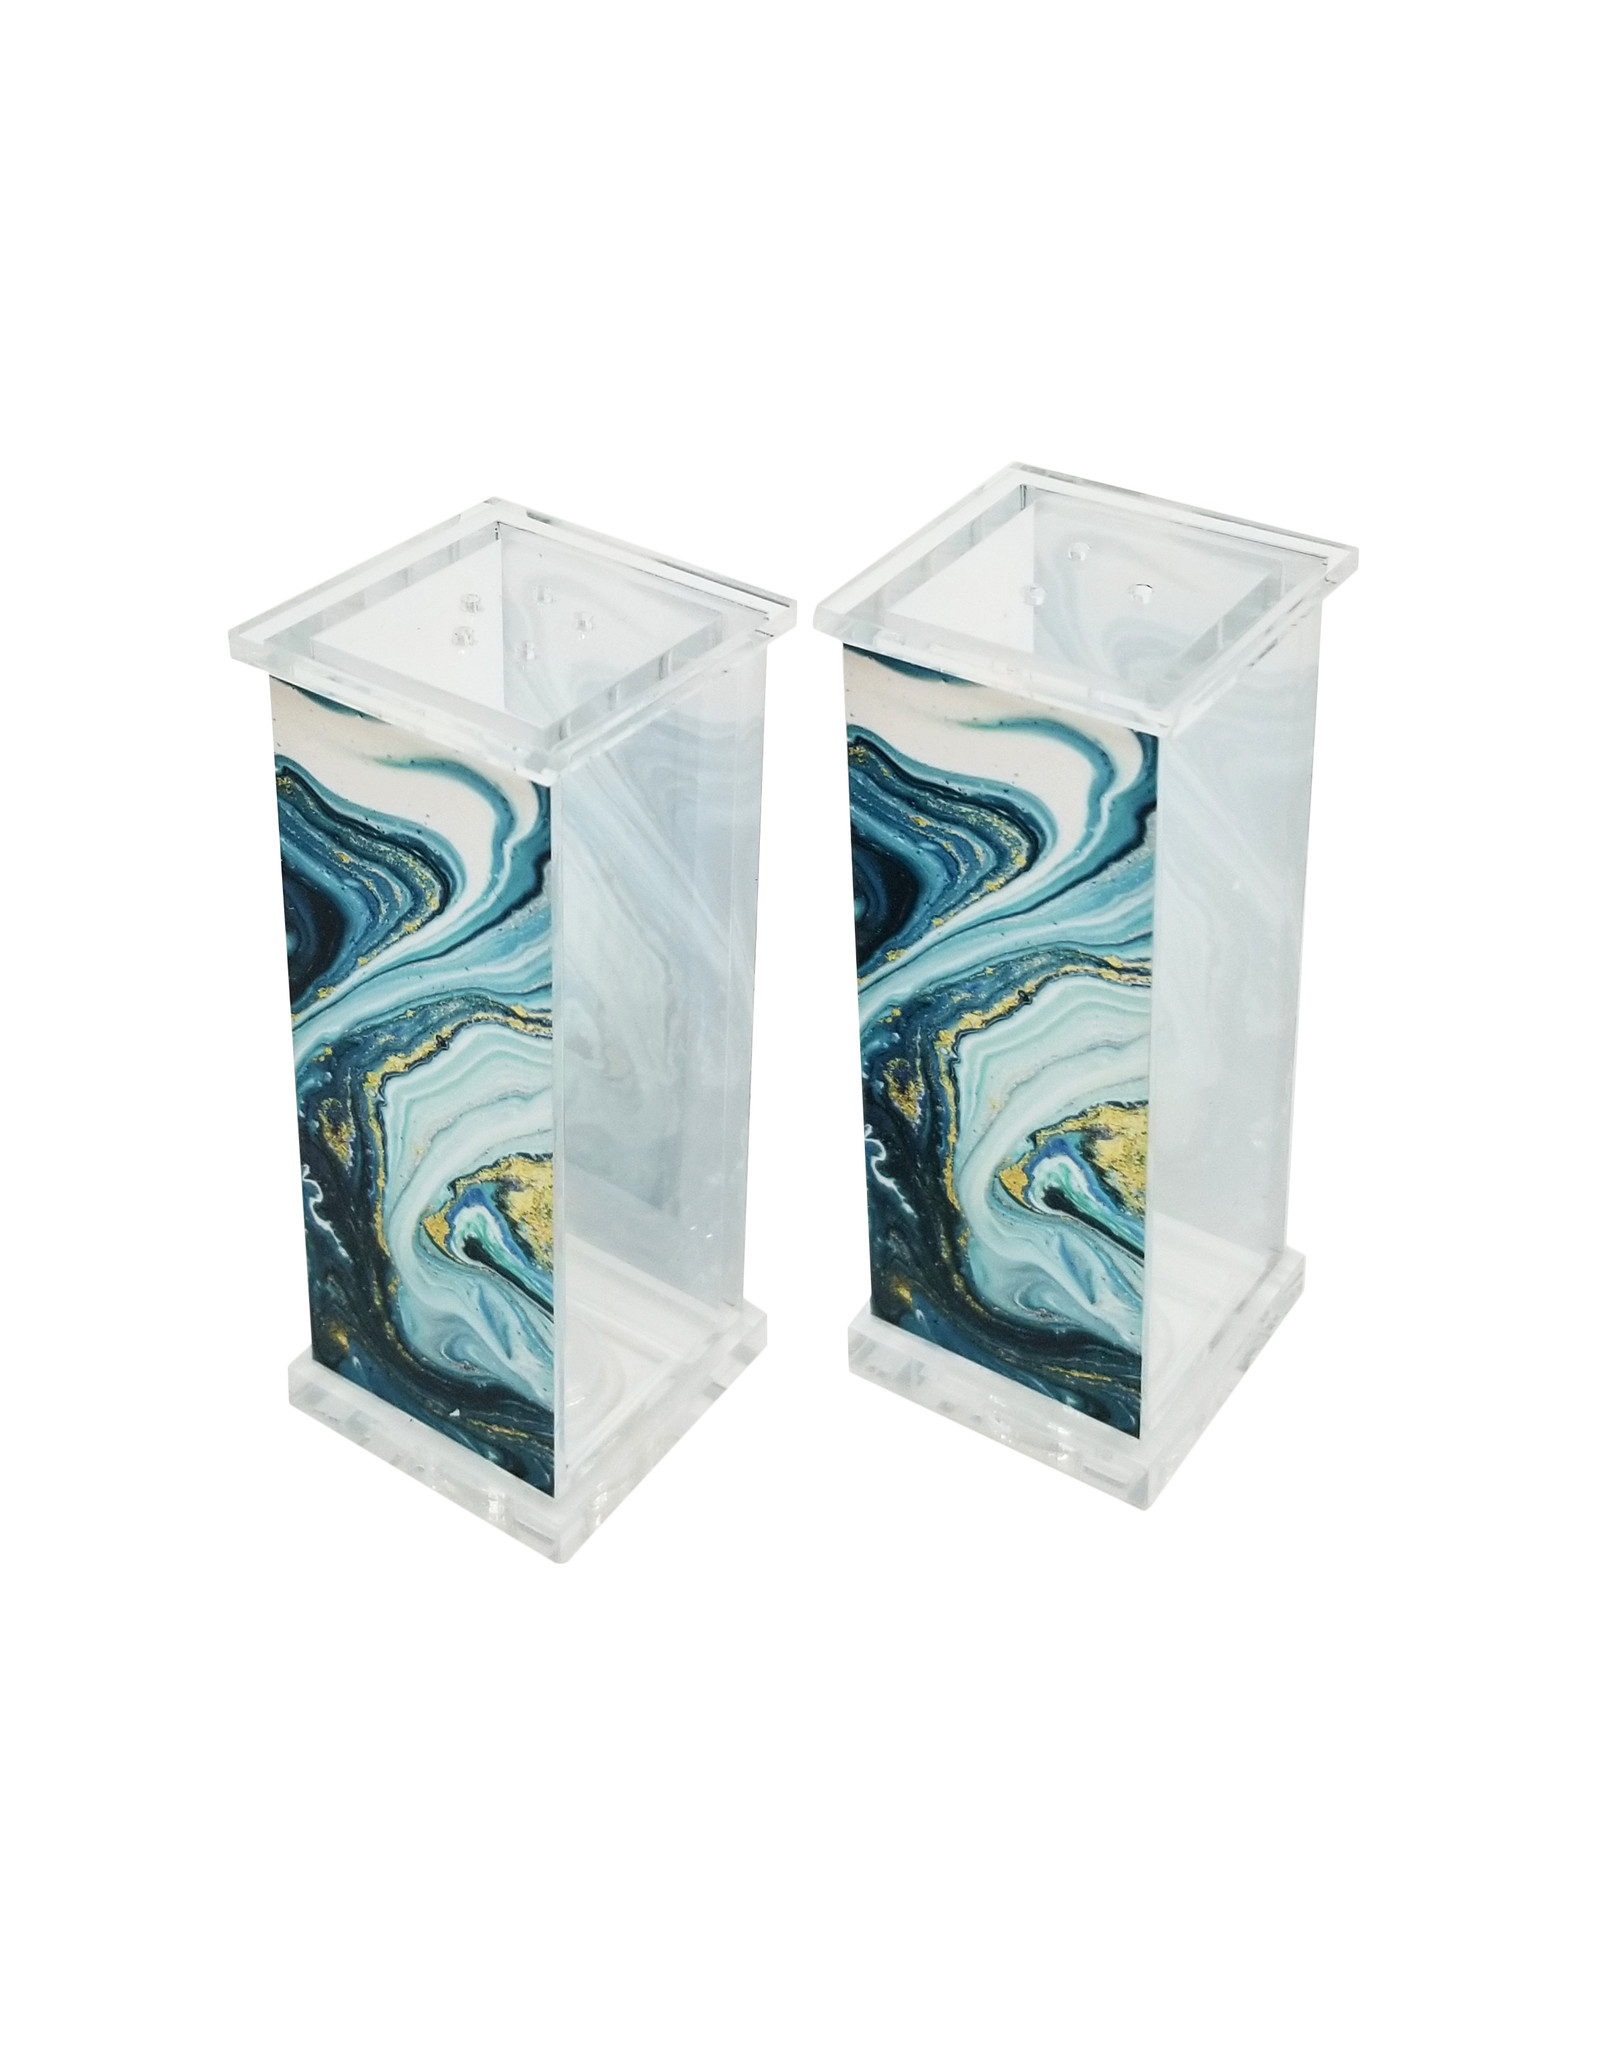 Presented Touch Acrylic Salt & Pepper Set Blue Marble